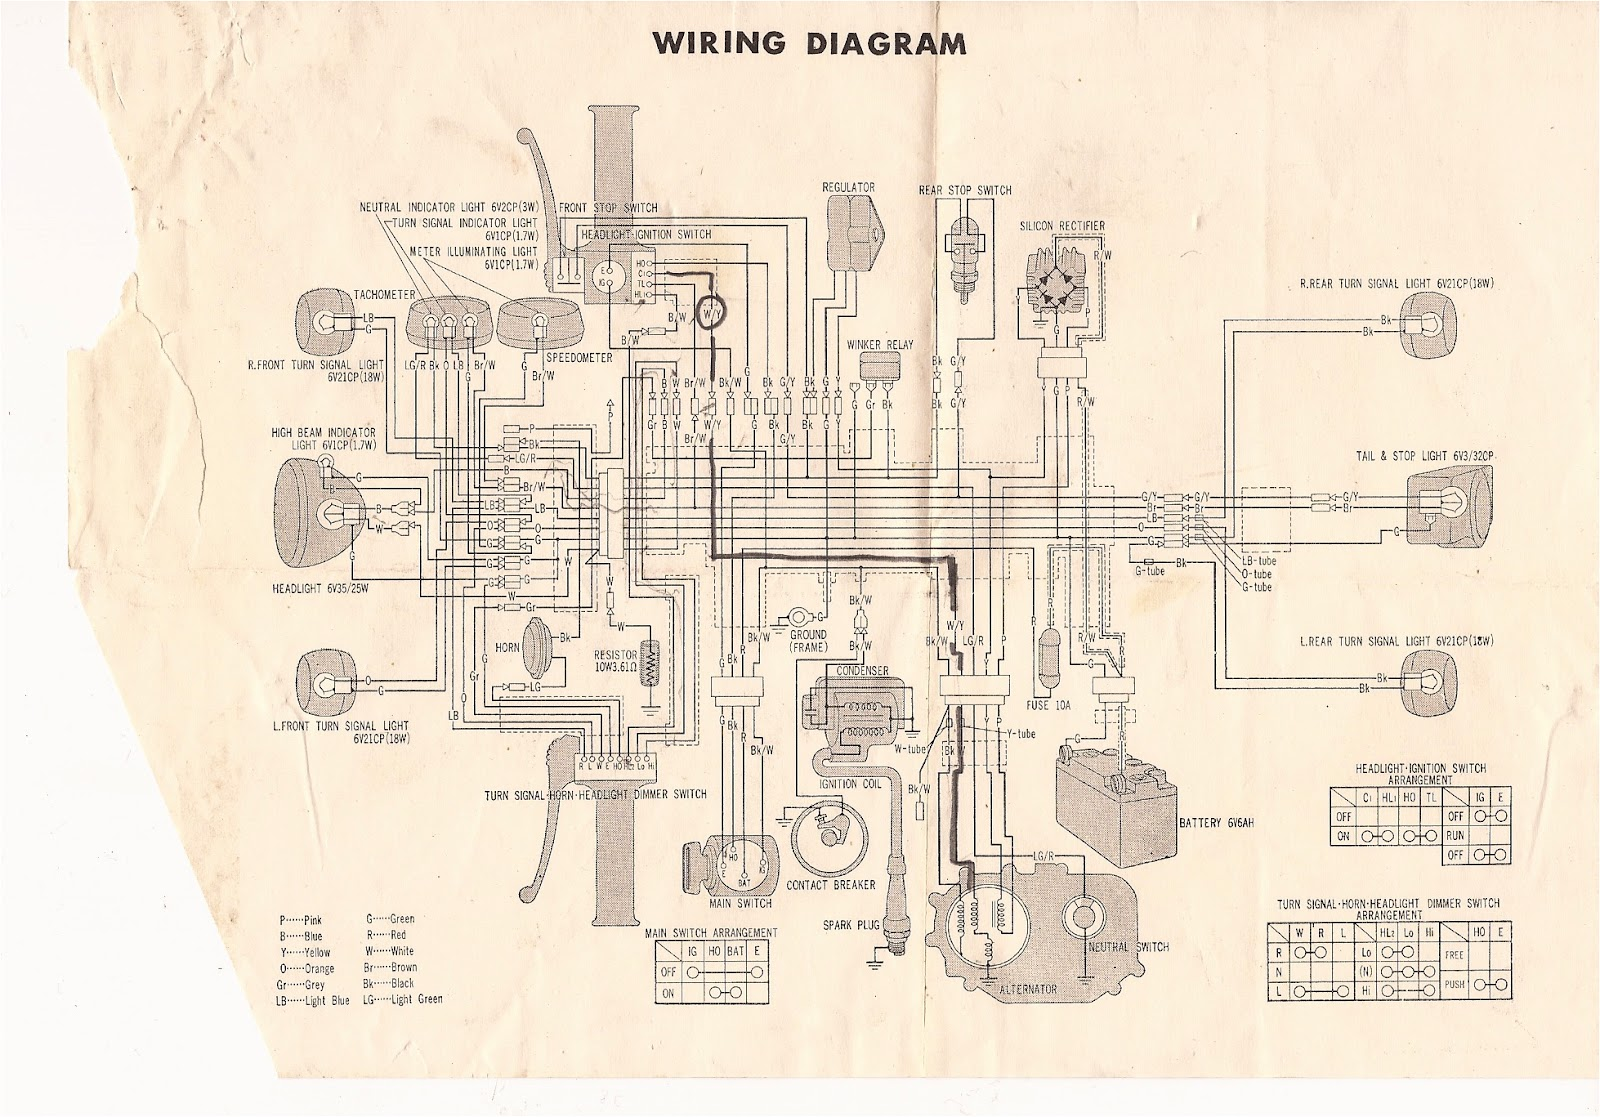 xl350 wiring diagram wiring diagram u2022 rh tinyforge co XL350 Cafe Racer 1975 honda xl 350 wiring diagram